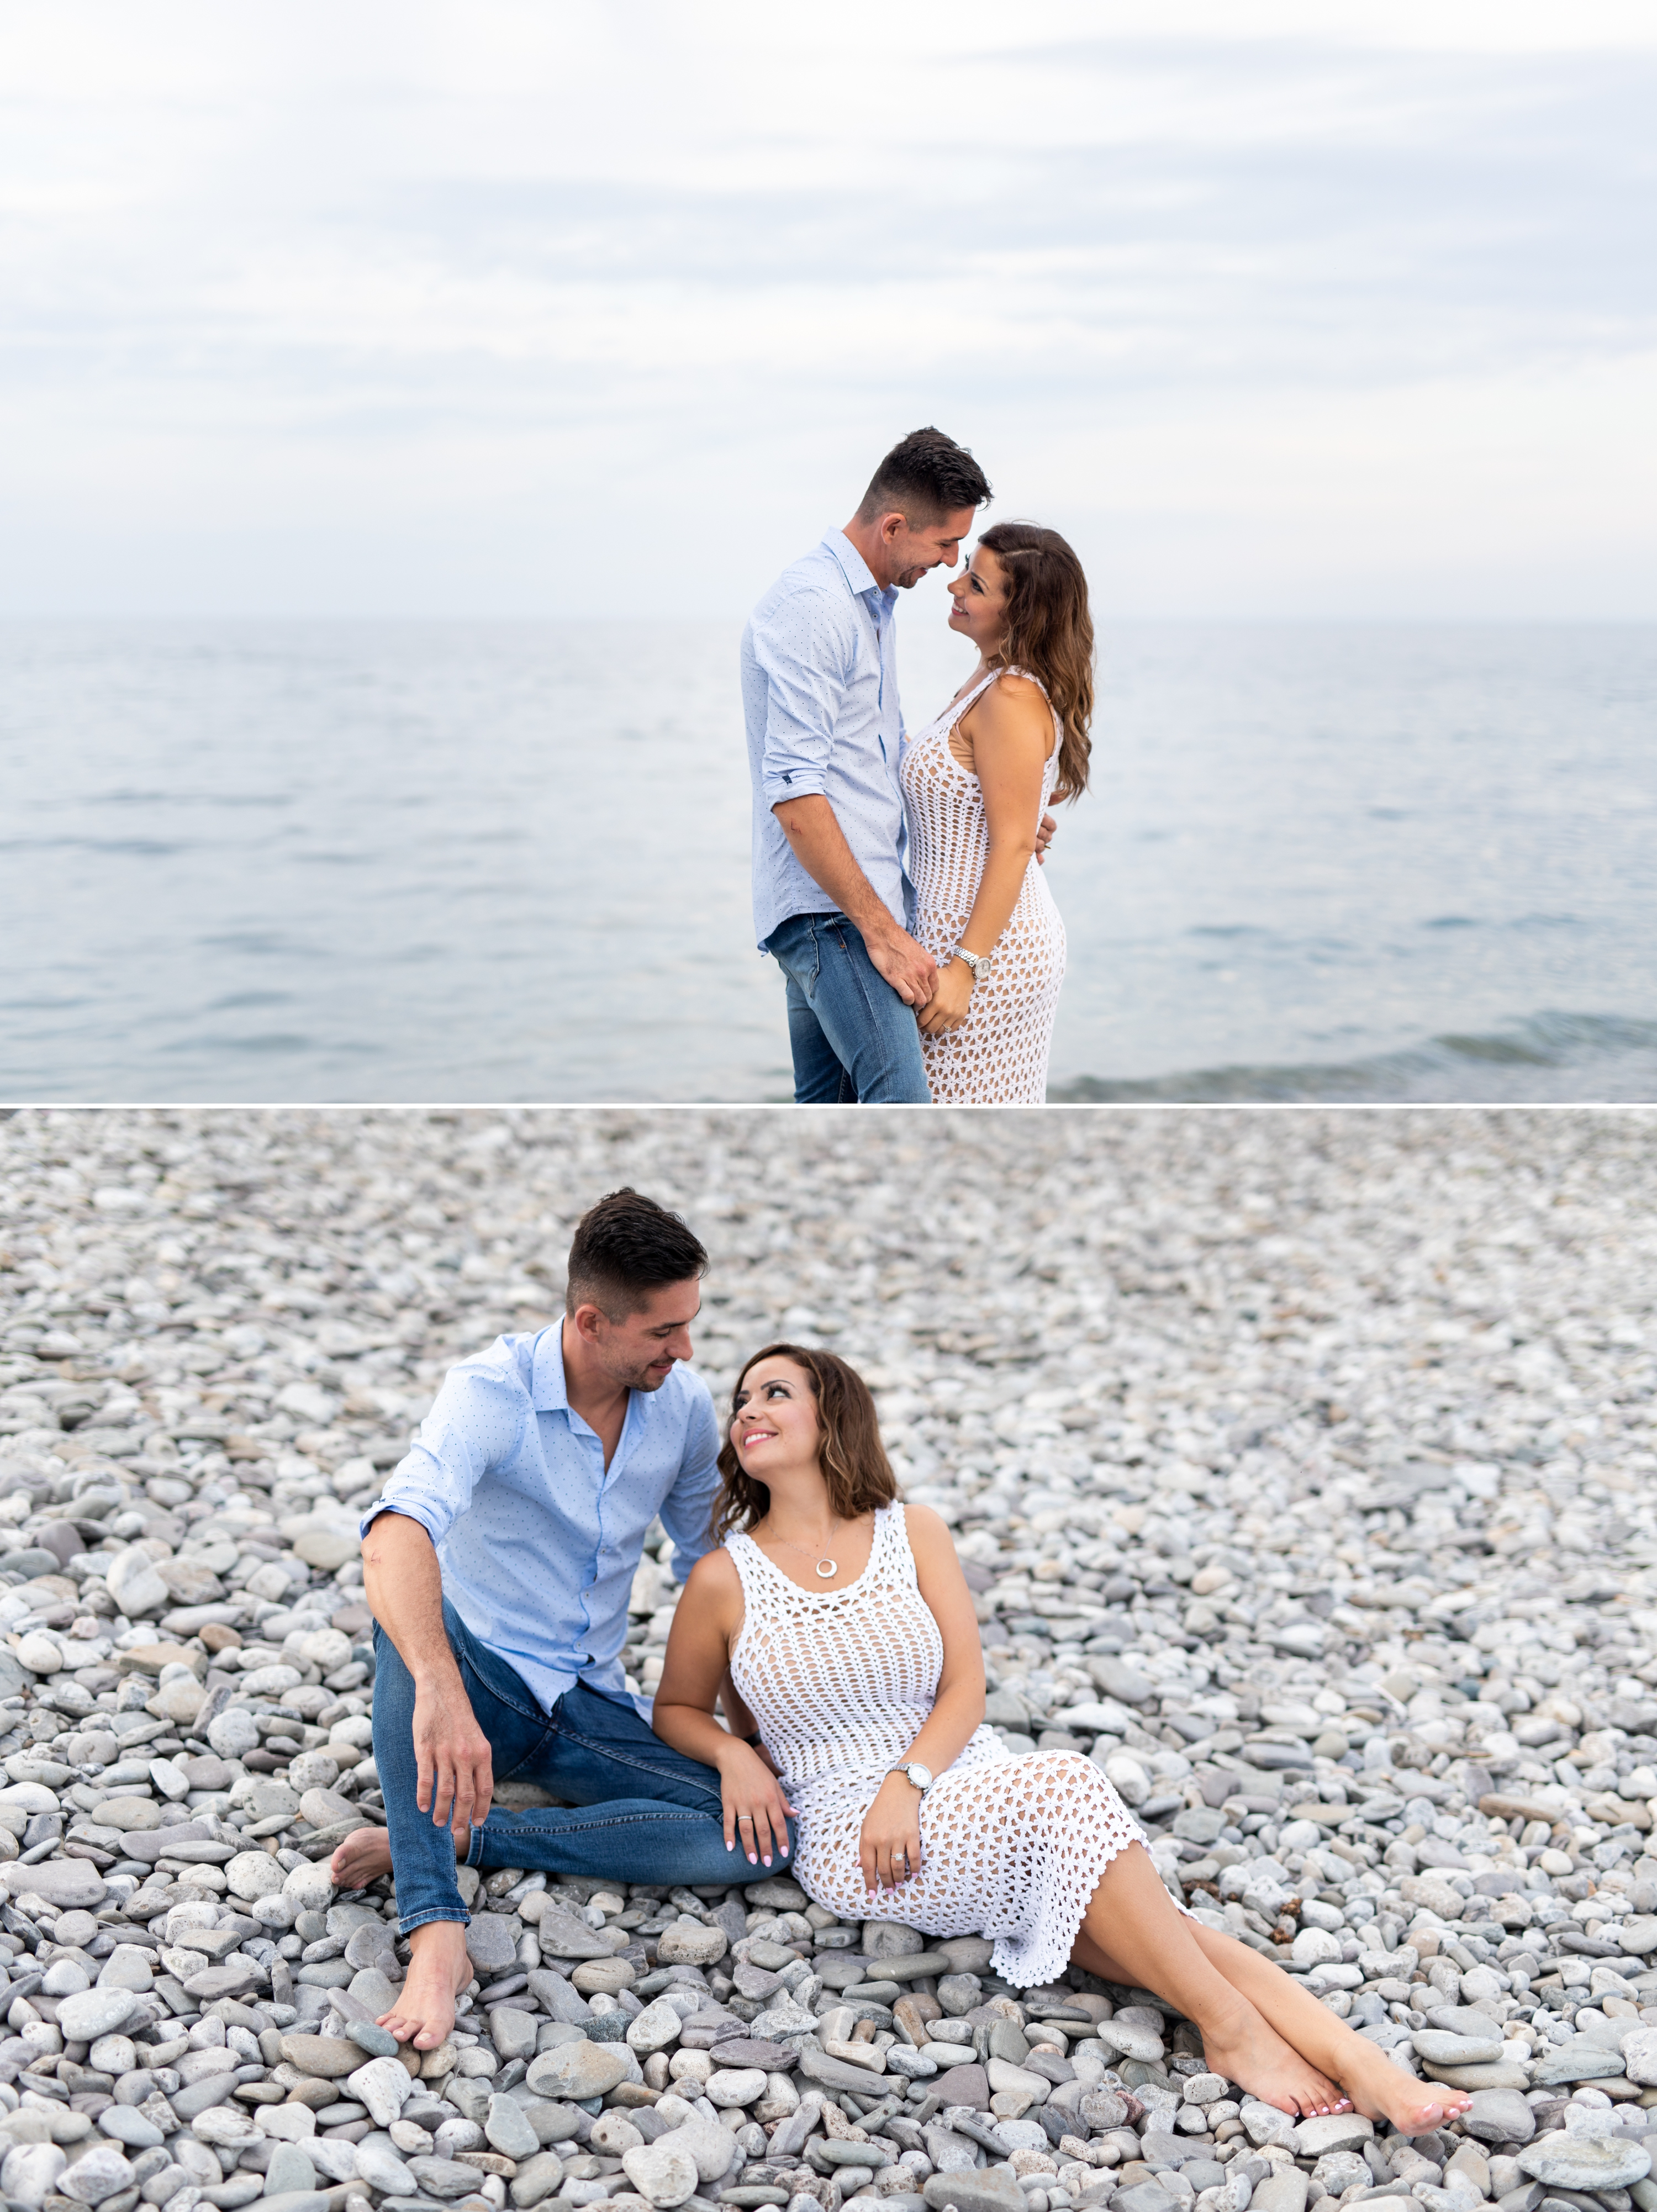 Pebble Beach Emoke and Erno Engagement Oakville Pier Zsuzsi Pal Photography